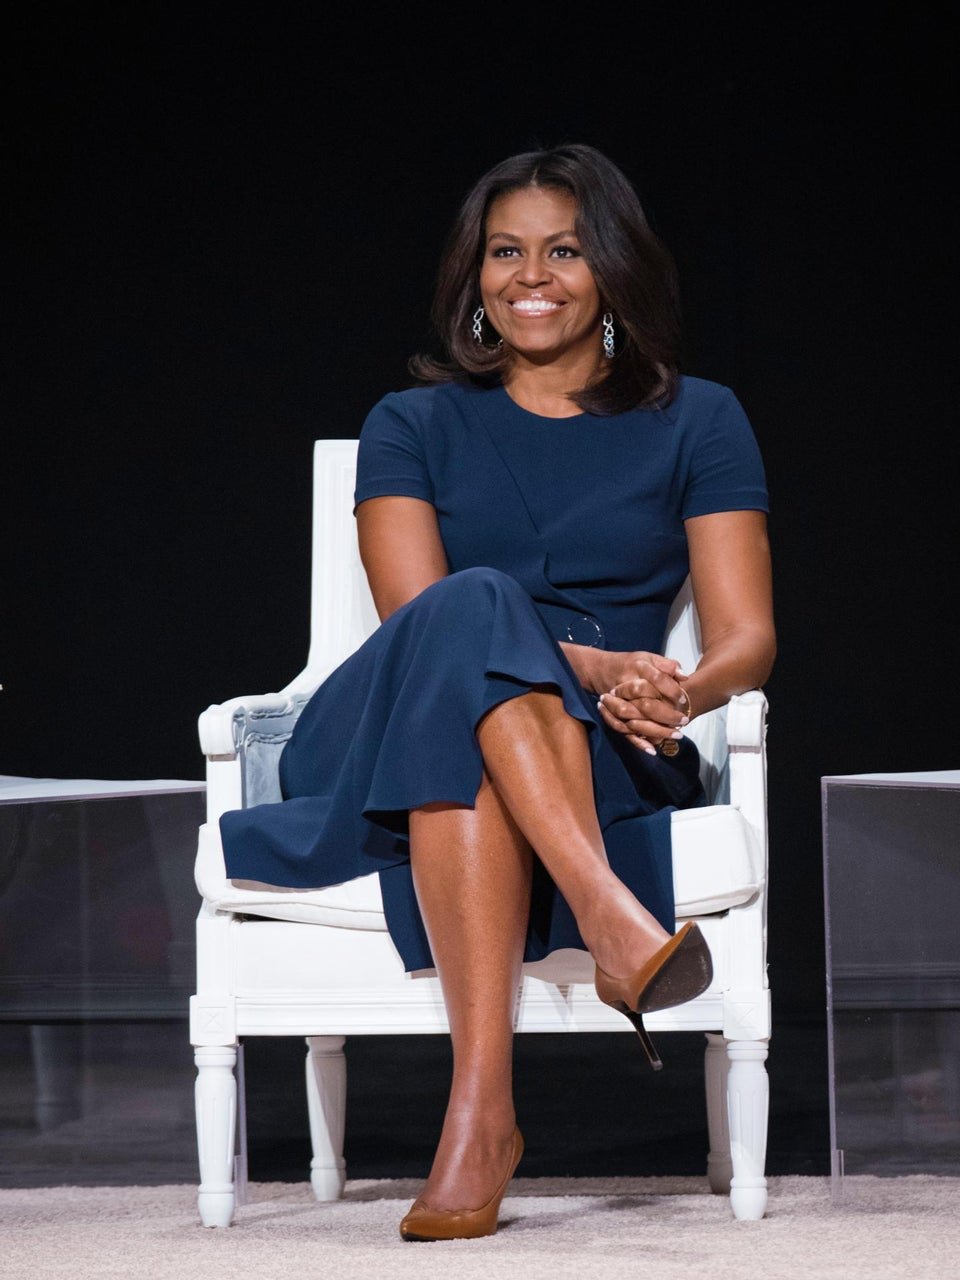 FLOTUS Calls on Millennials to Help the 62 Million Girls Without Access to Education